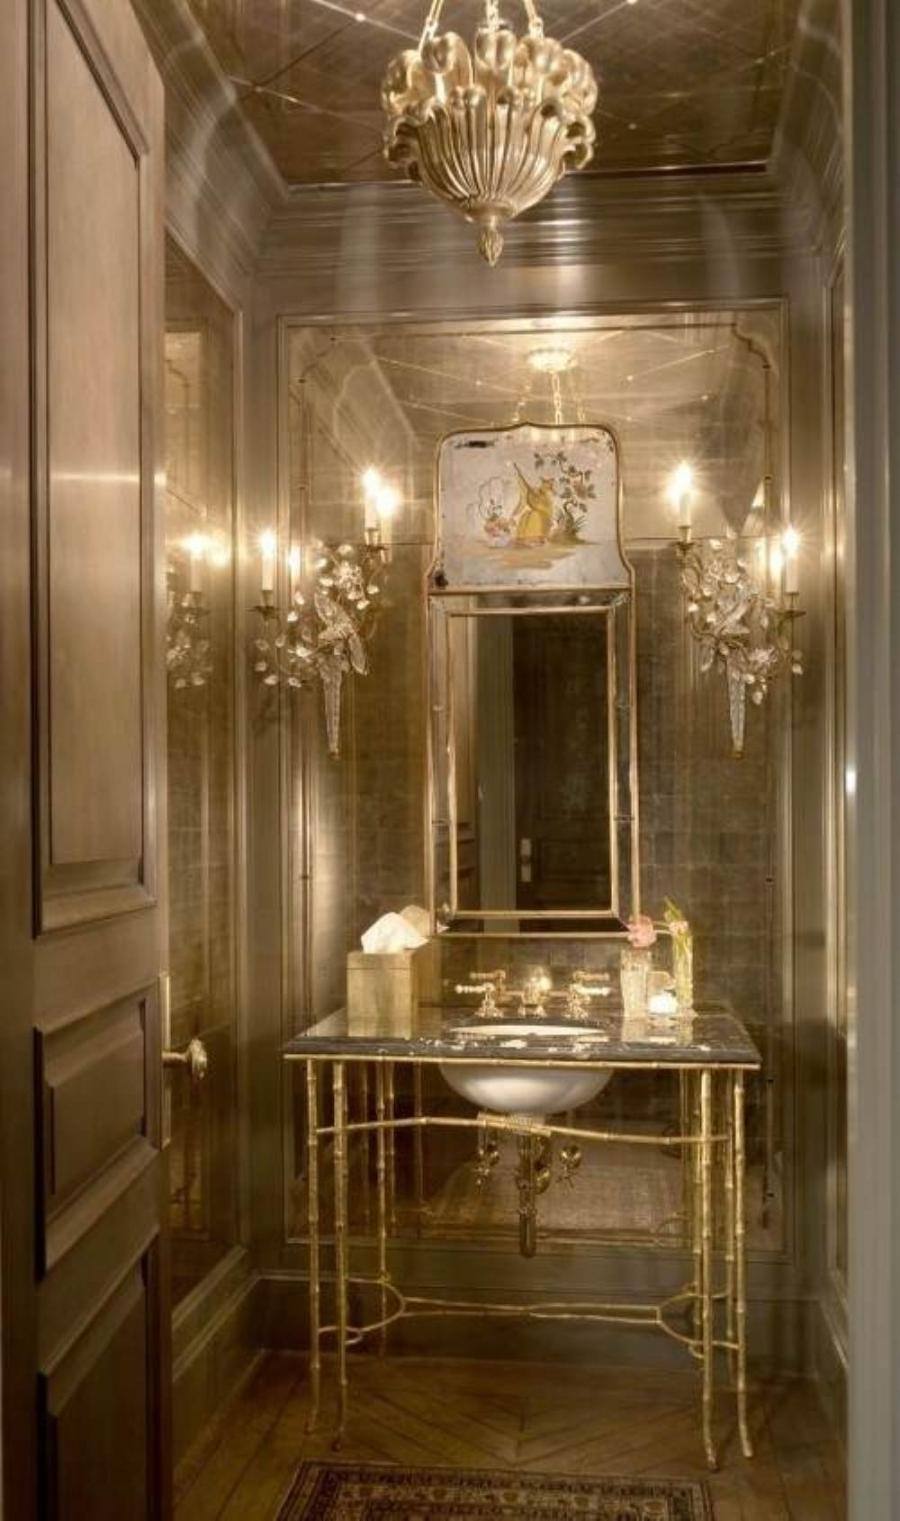 Photos of beautiful powder rooms - Luxury bathroom designs with stunning interior ...